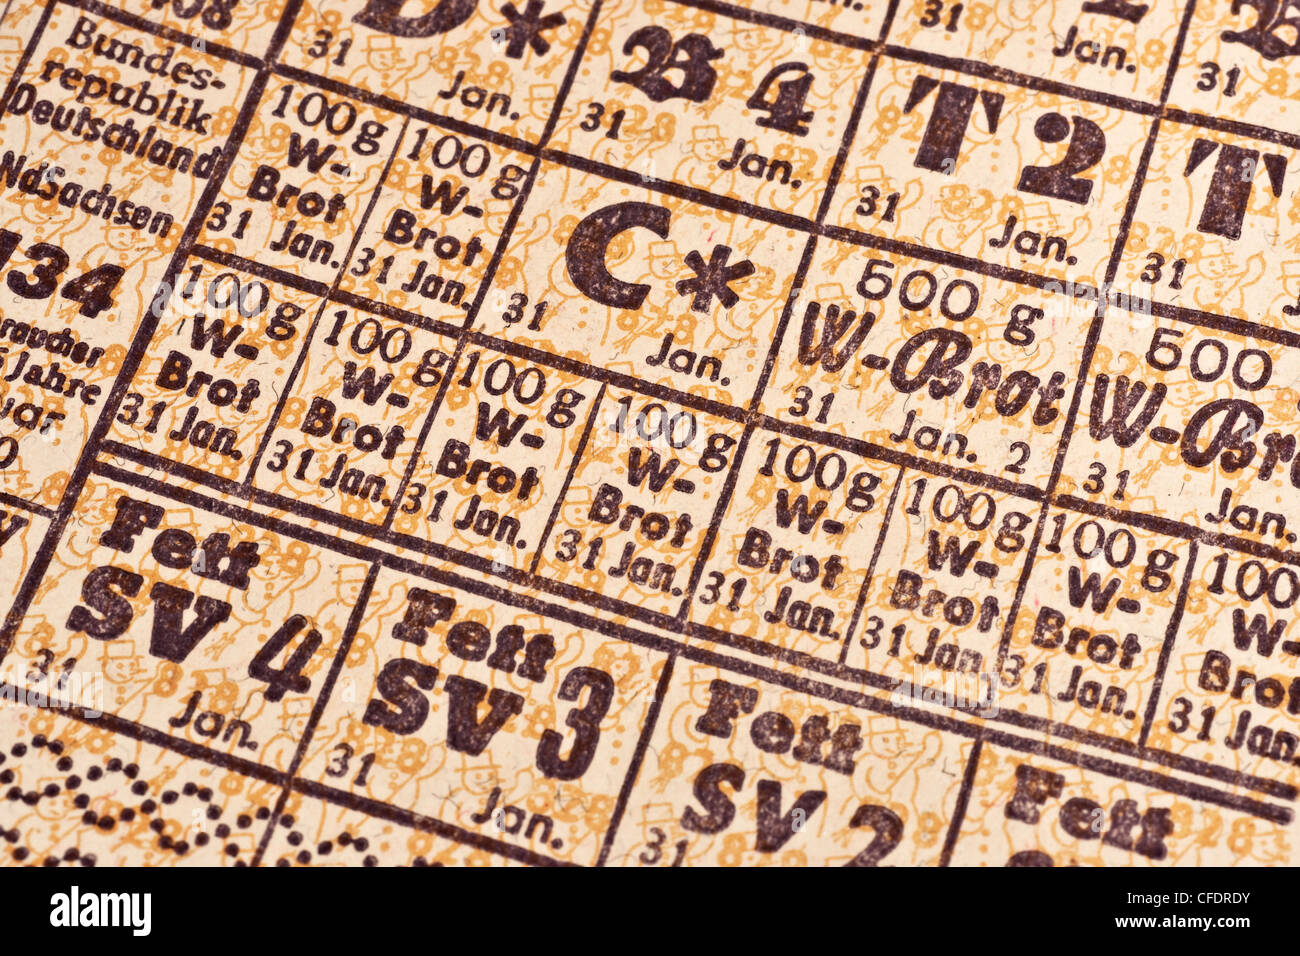 Detail photo of food ration cards, Lower Saxony, January 1950, Federal Republic of Germany - Stock Image